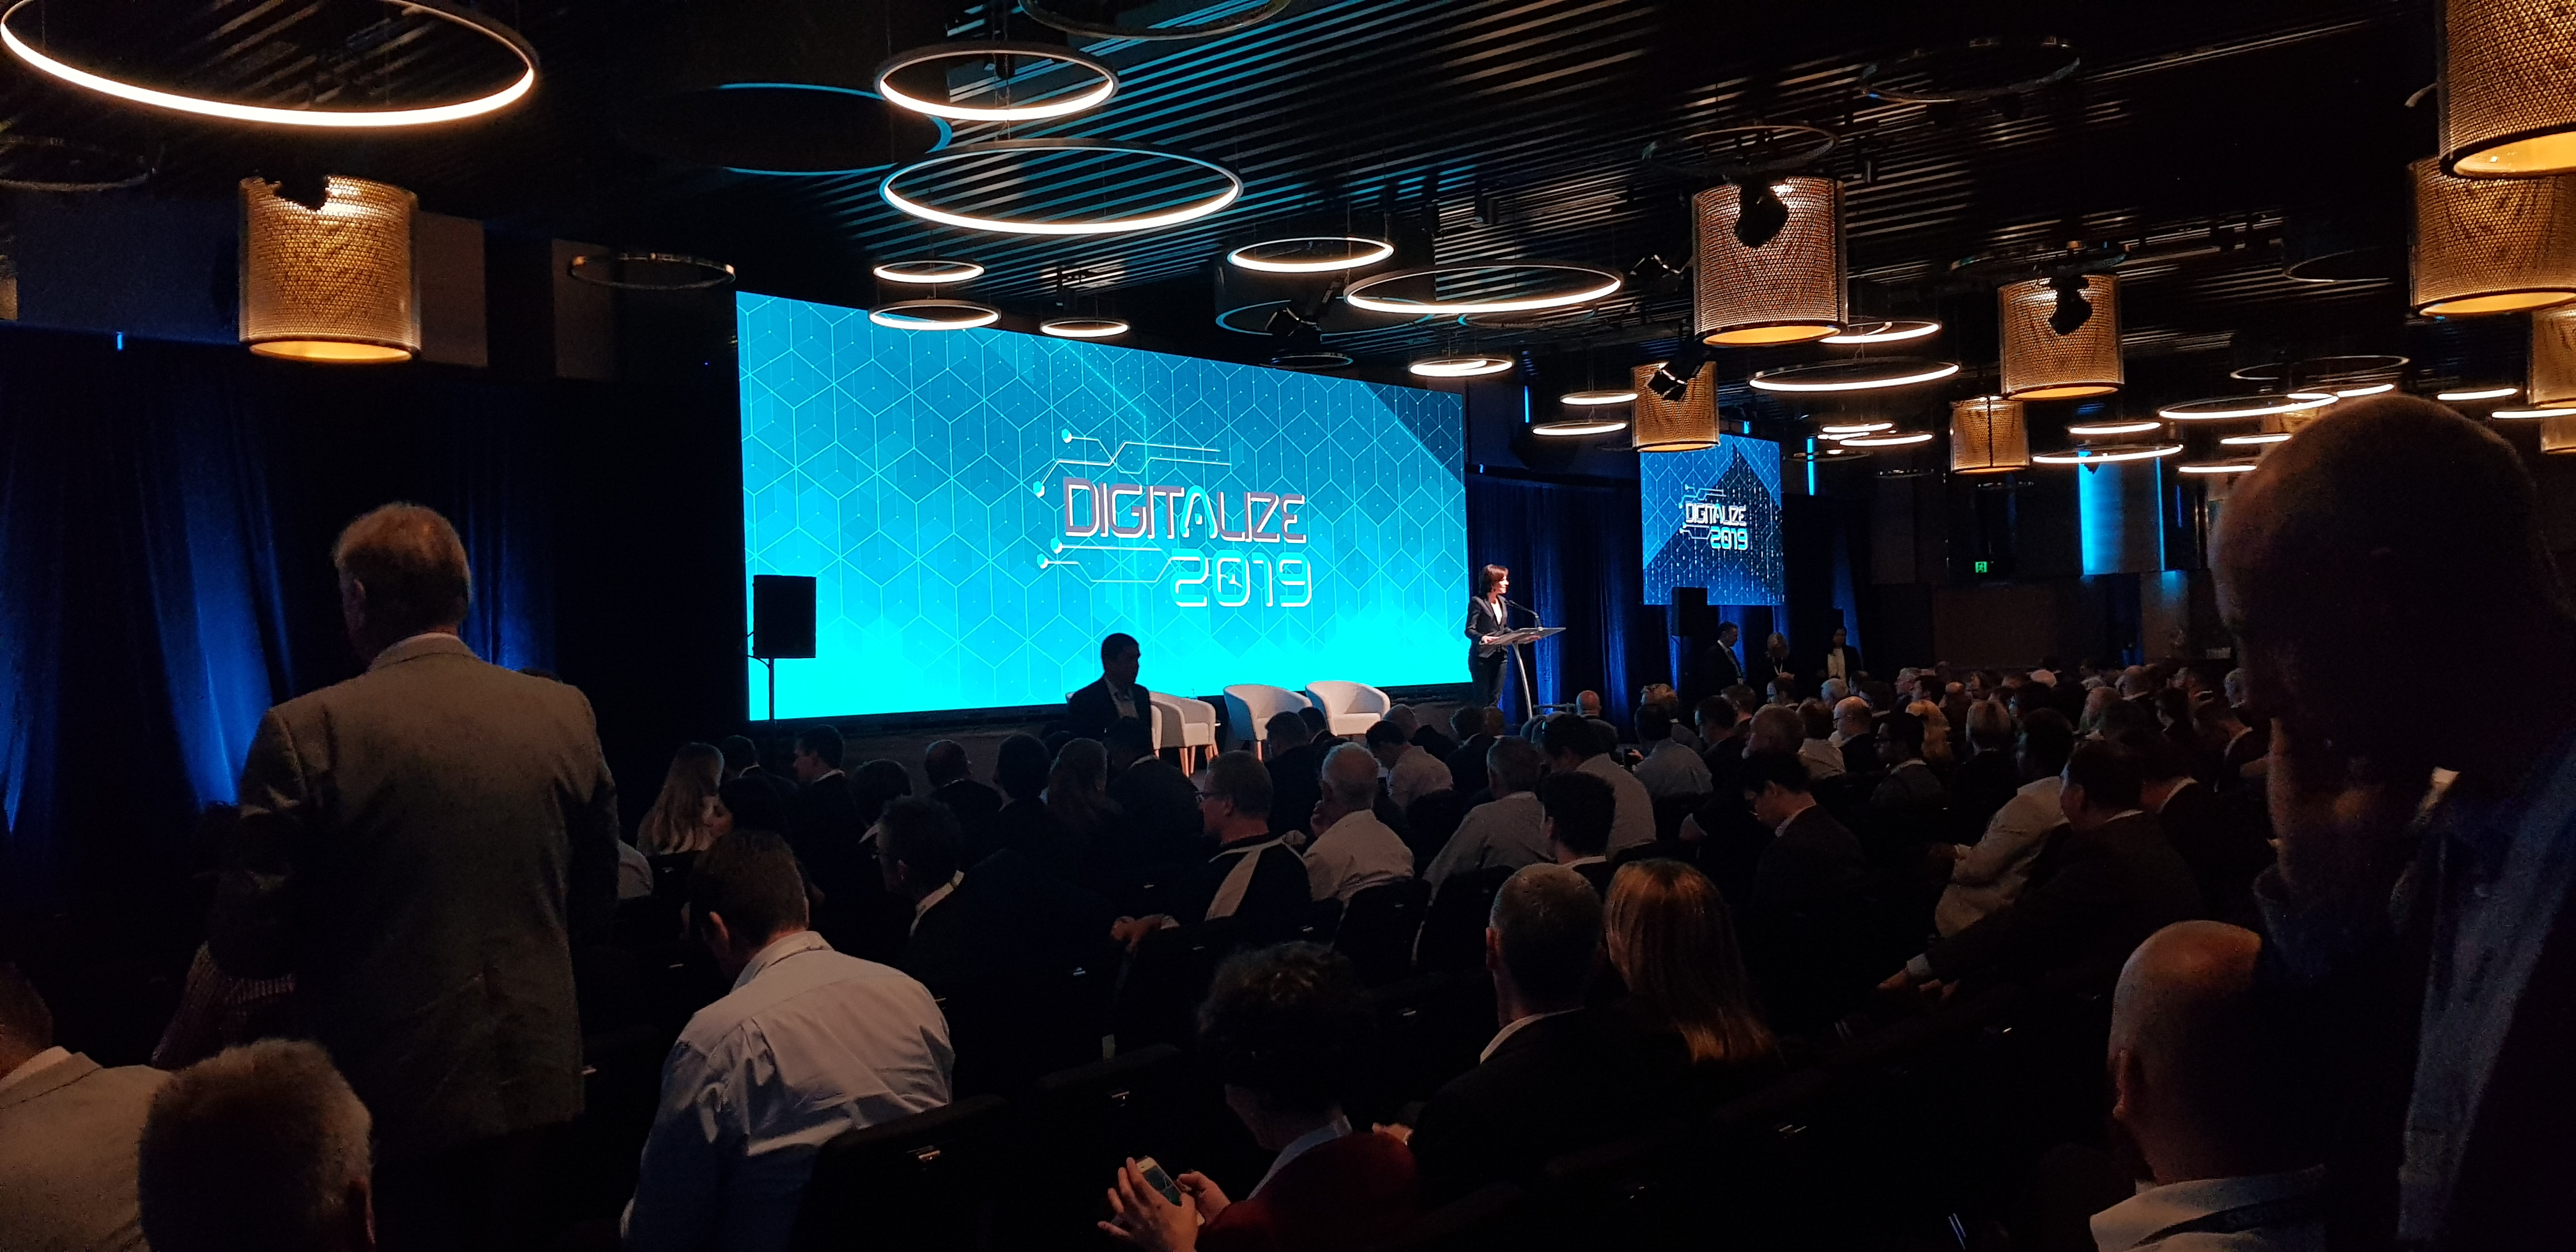 A digitalized world - key takeaways from Siemens Digitalize Conference